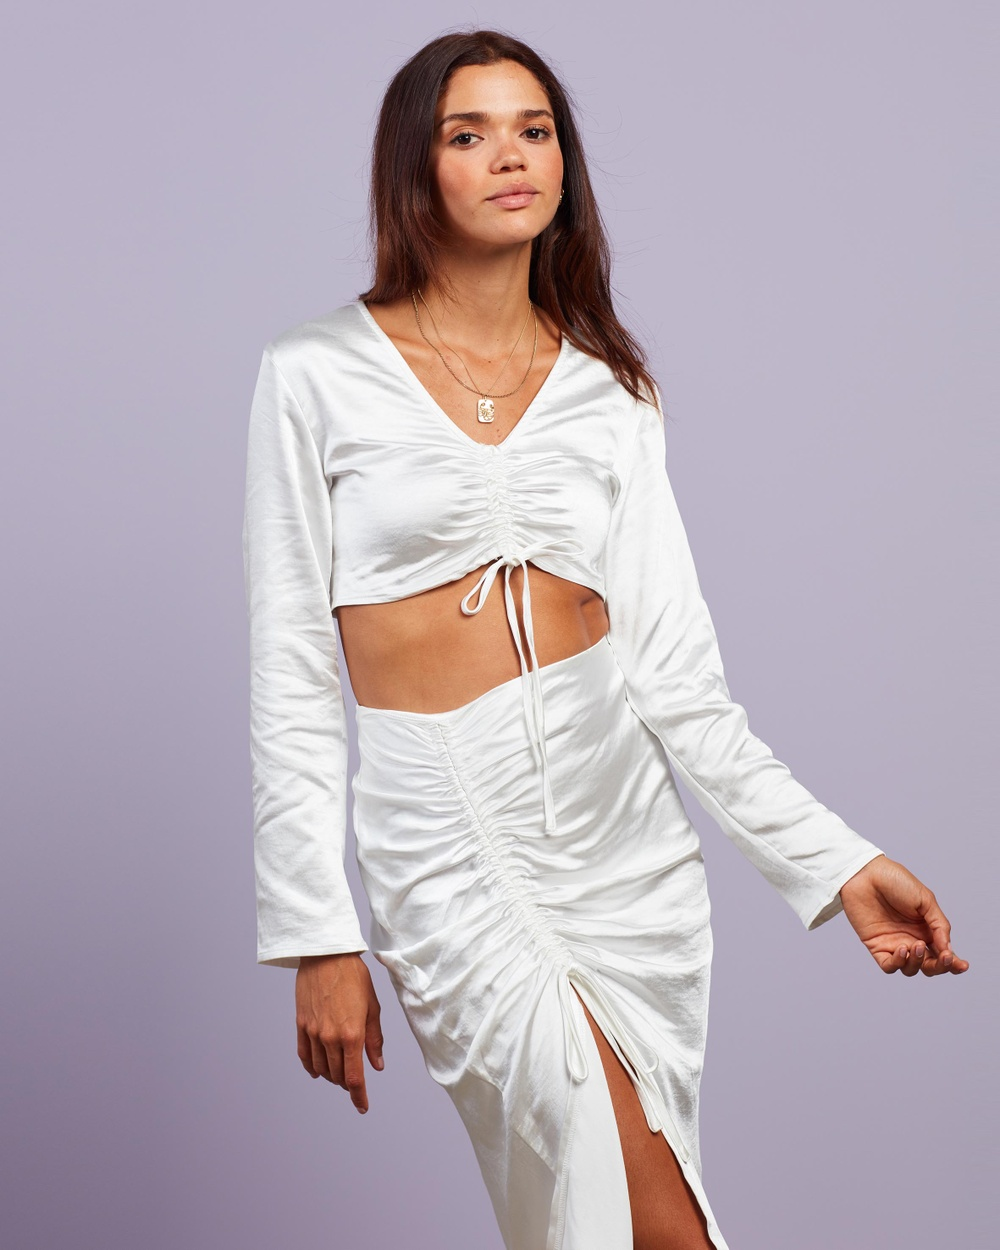 4th & Reckless Lottie Top Cropped tops White Satin